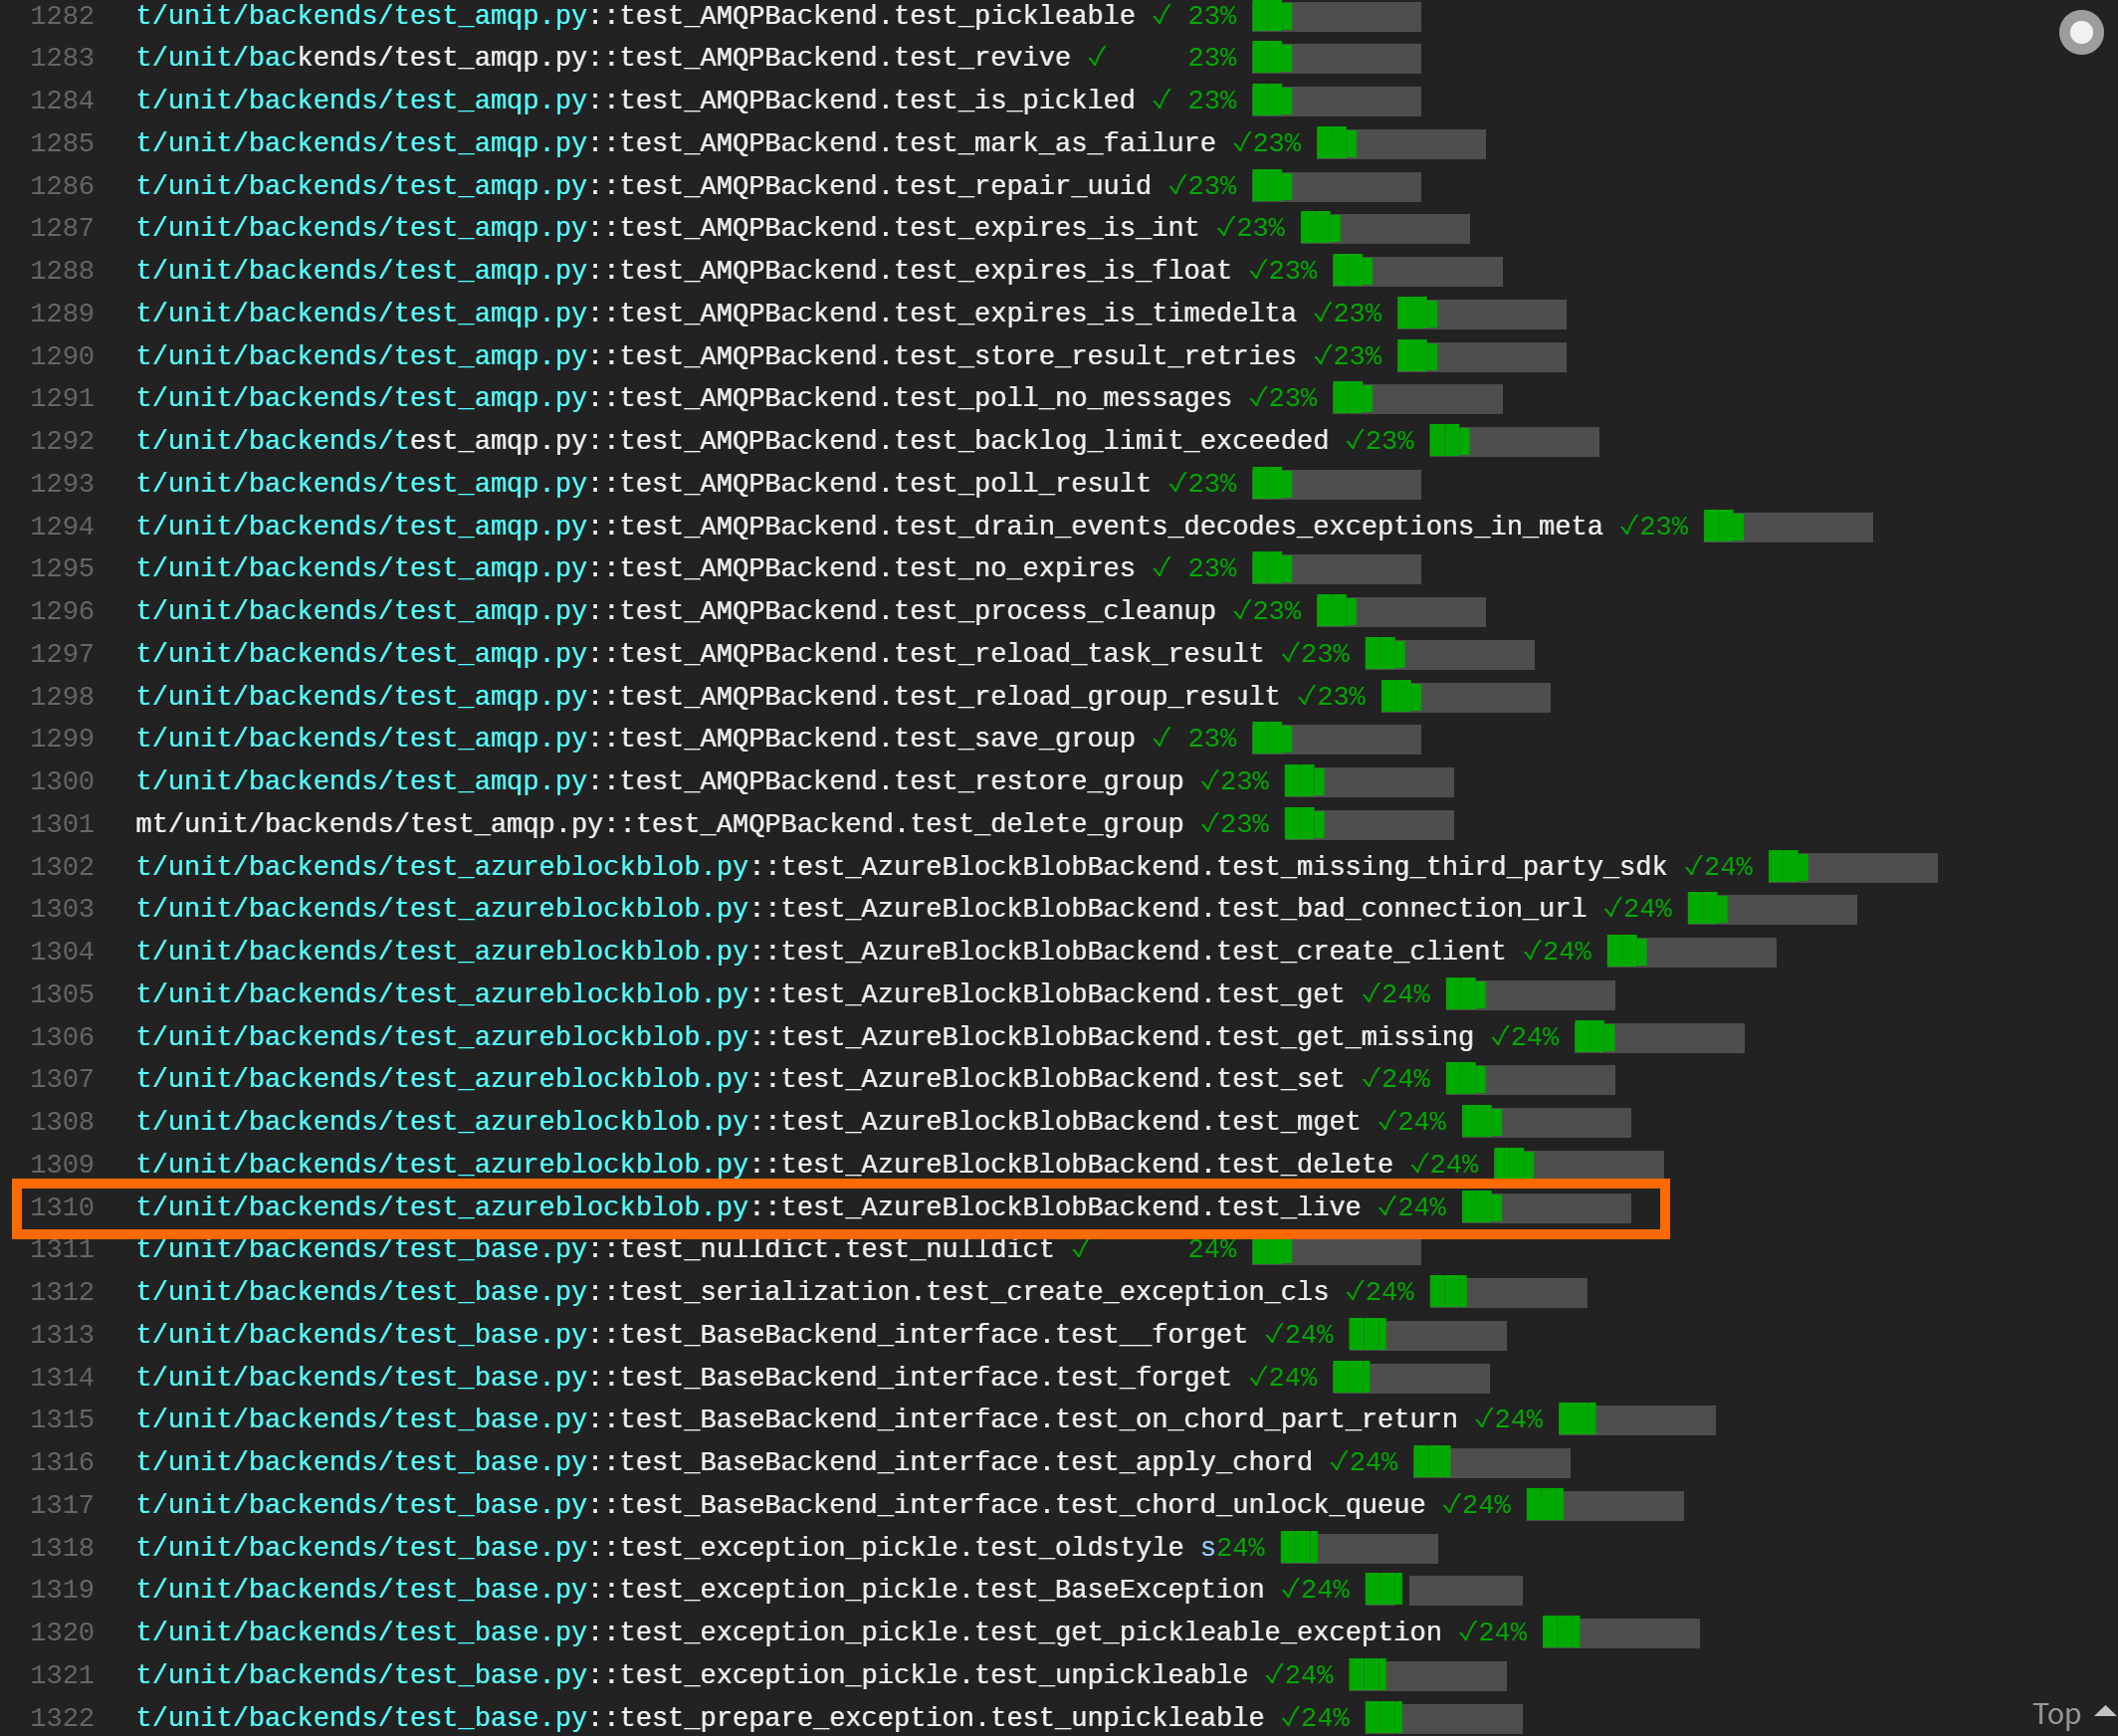 Screenshot showing end-to-end test for Azure Block Blob backend running on Travis